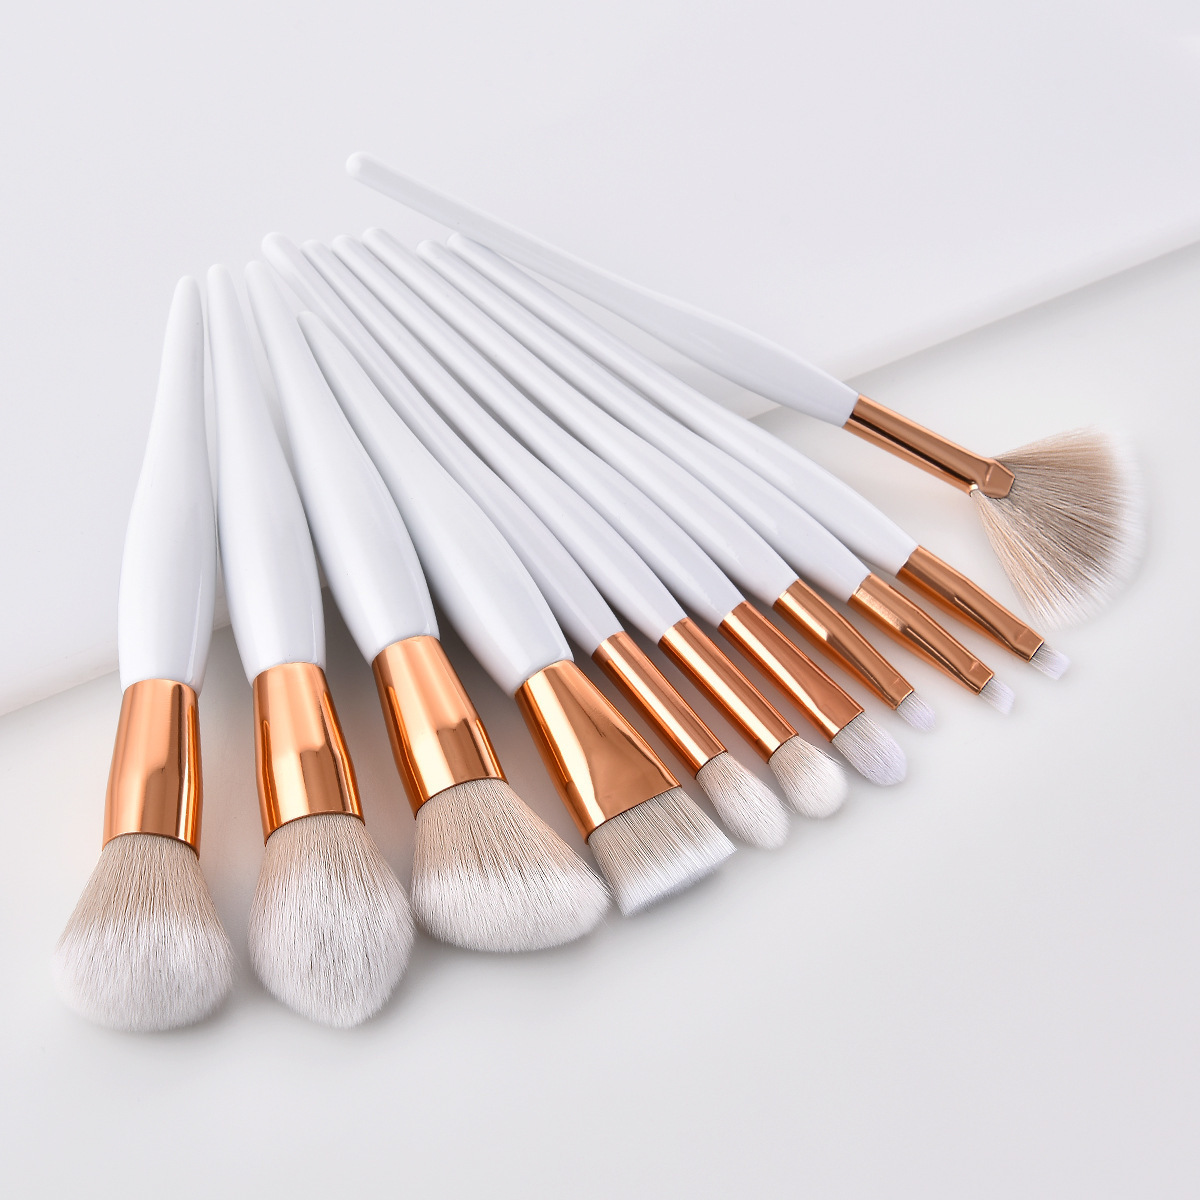 Professional Single Makeup Brushes High Quality Eye Shadow Eyebrow Lip Powder Foundation Make Up Brush Comestic Pencil Brush(China)